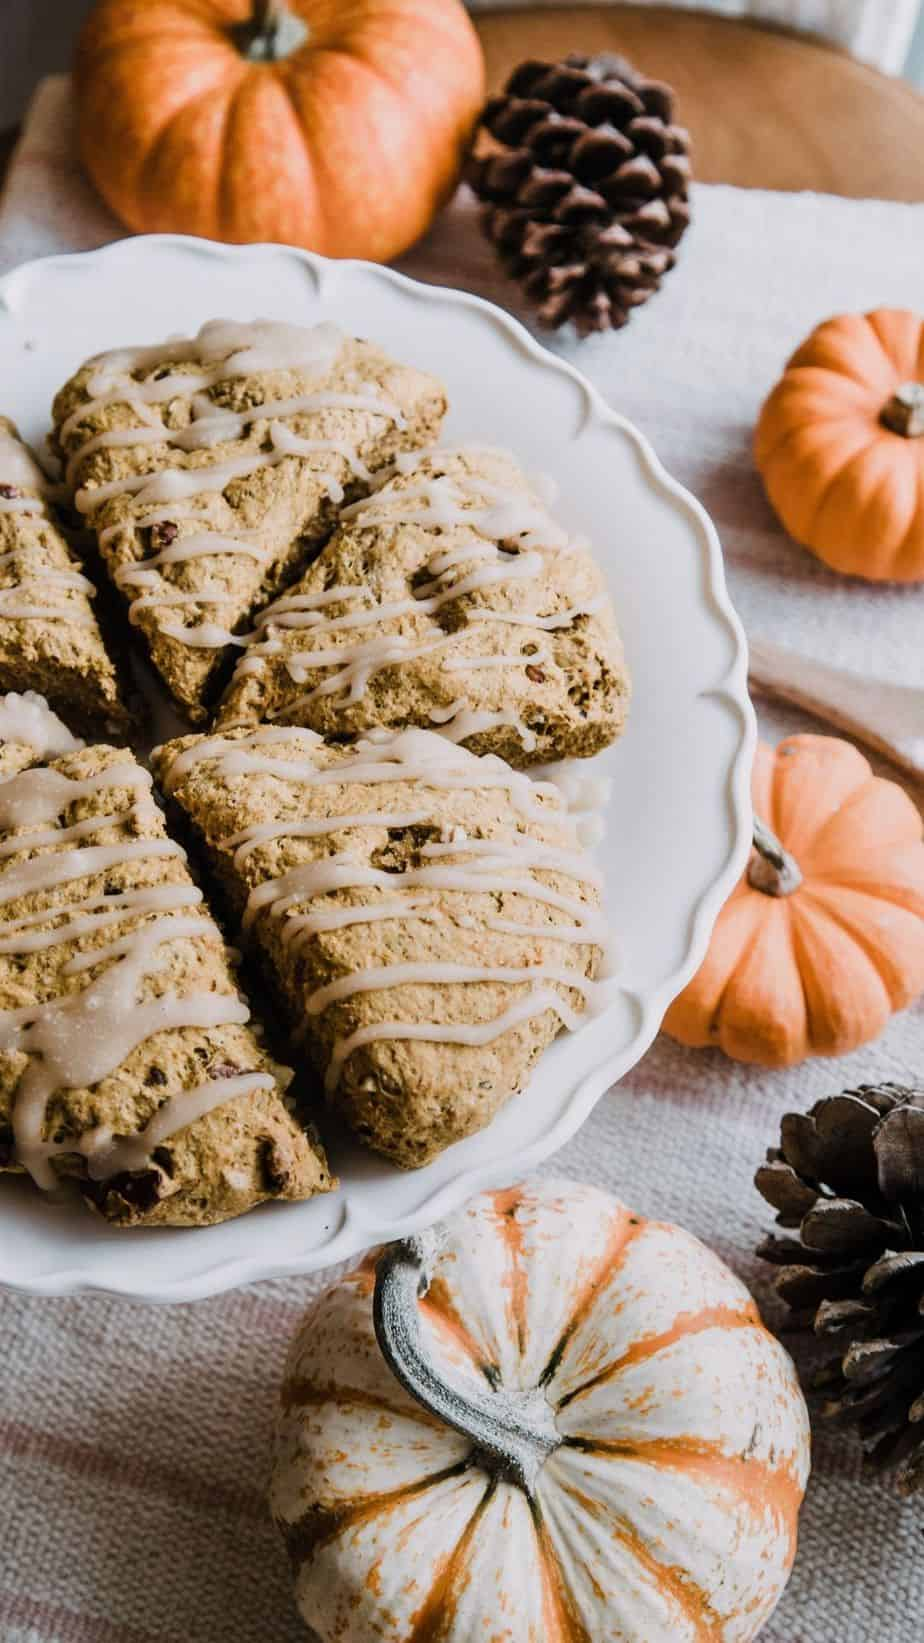 Fall Cookies Wallpaper.You can always make your iPhone look aesthetic with cute wallpapers, these 40 beautiful and aesthetic autumn fall wallpapers for your iPhone will make you feel that autumnal fall vibes.